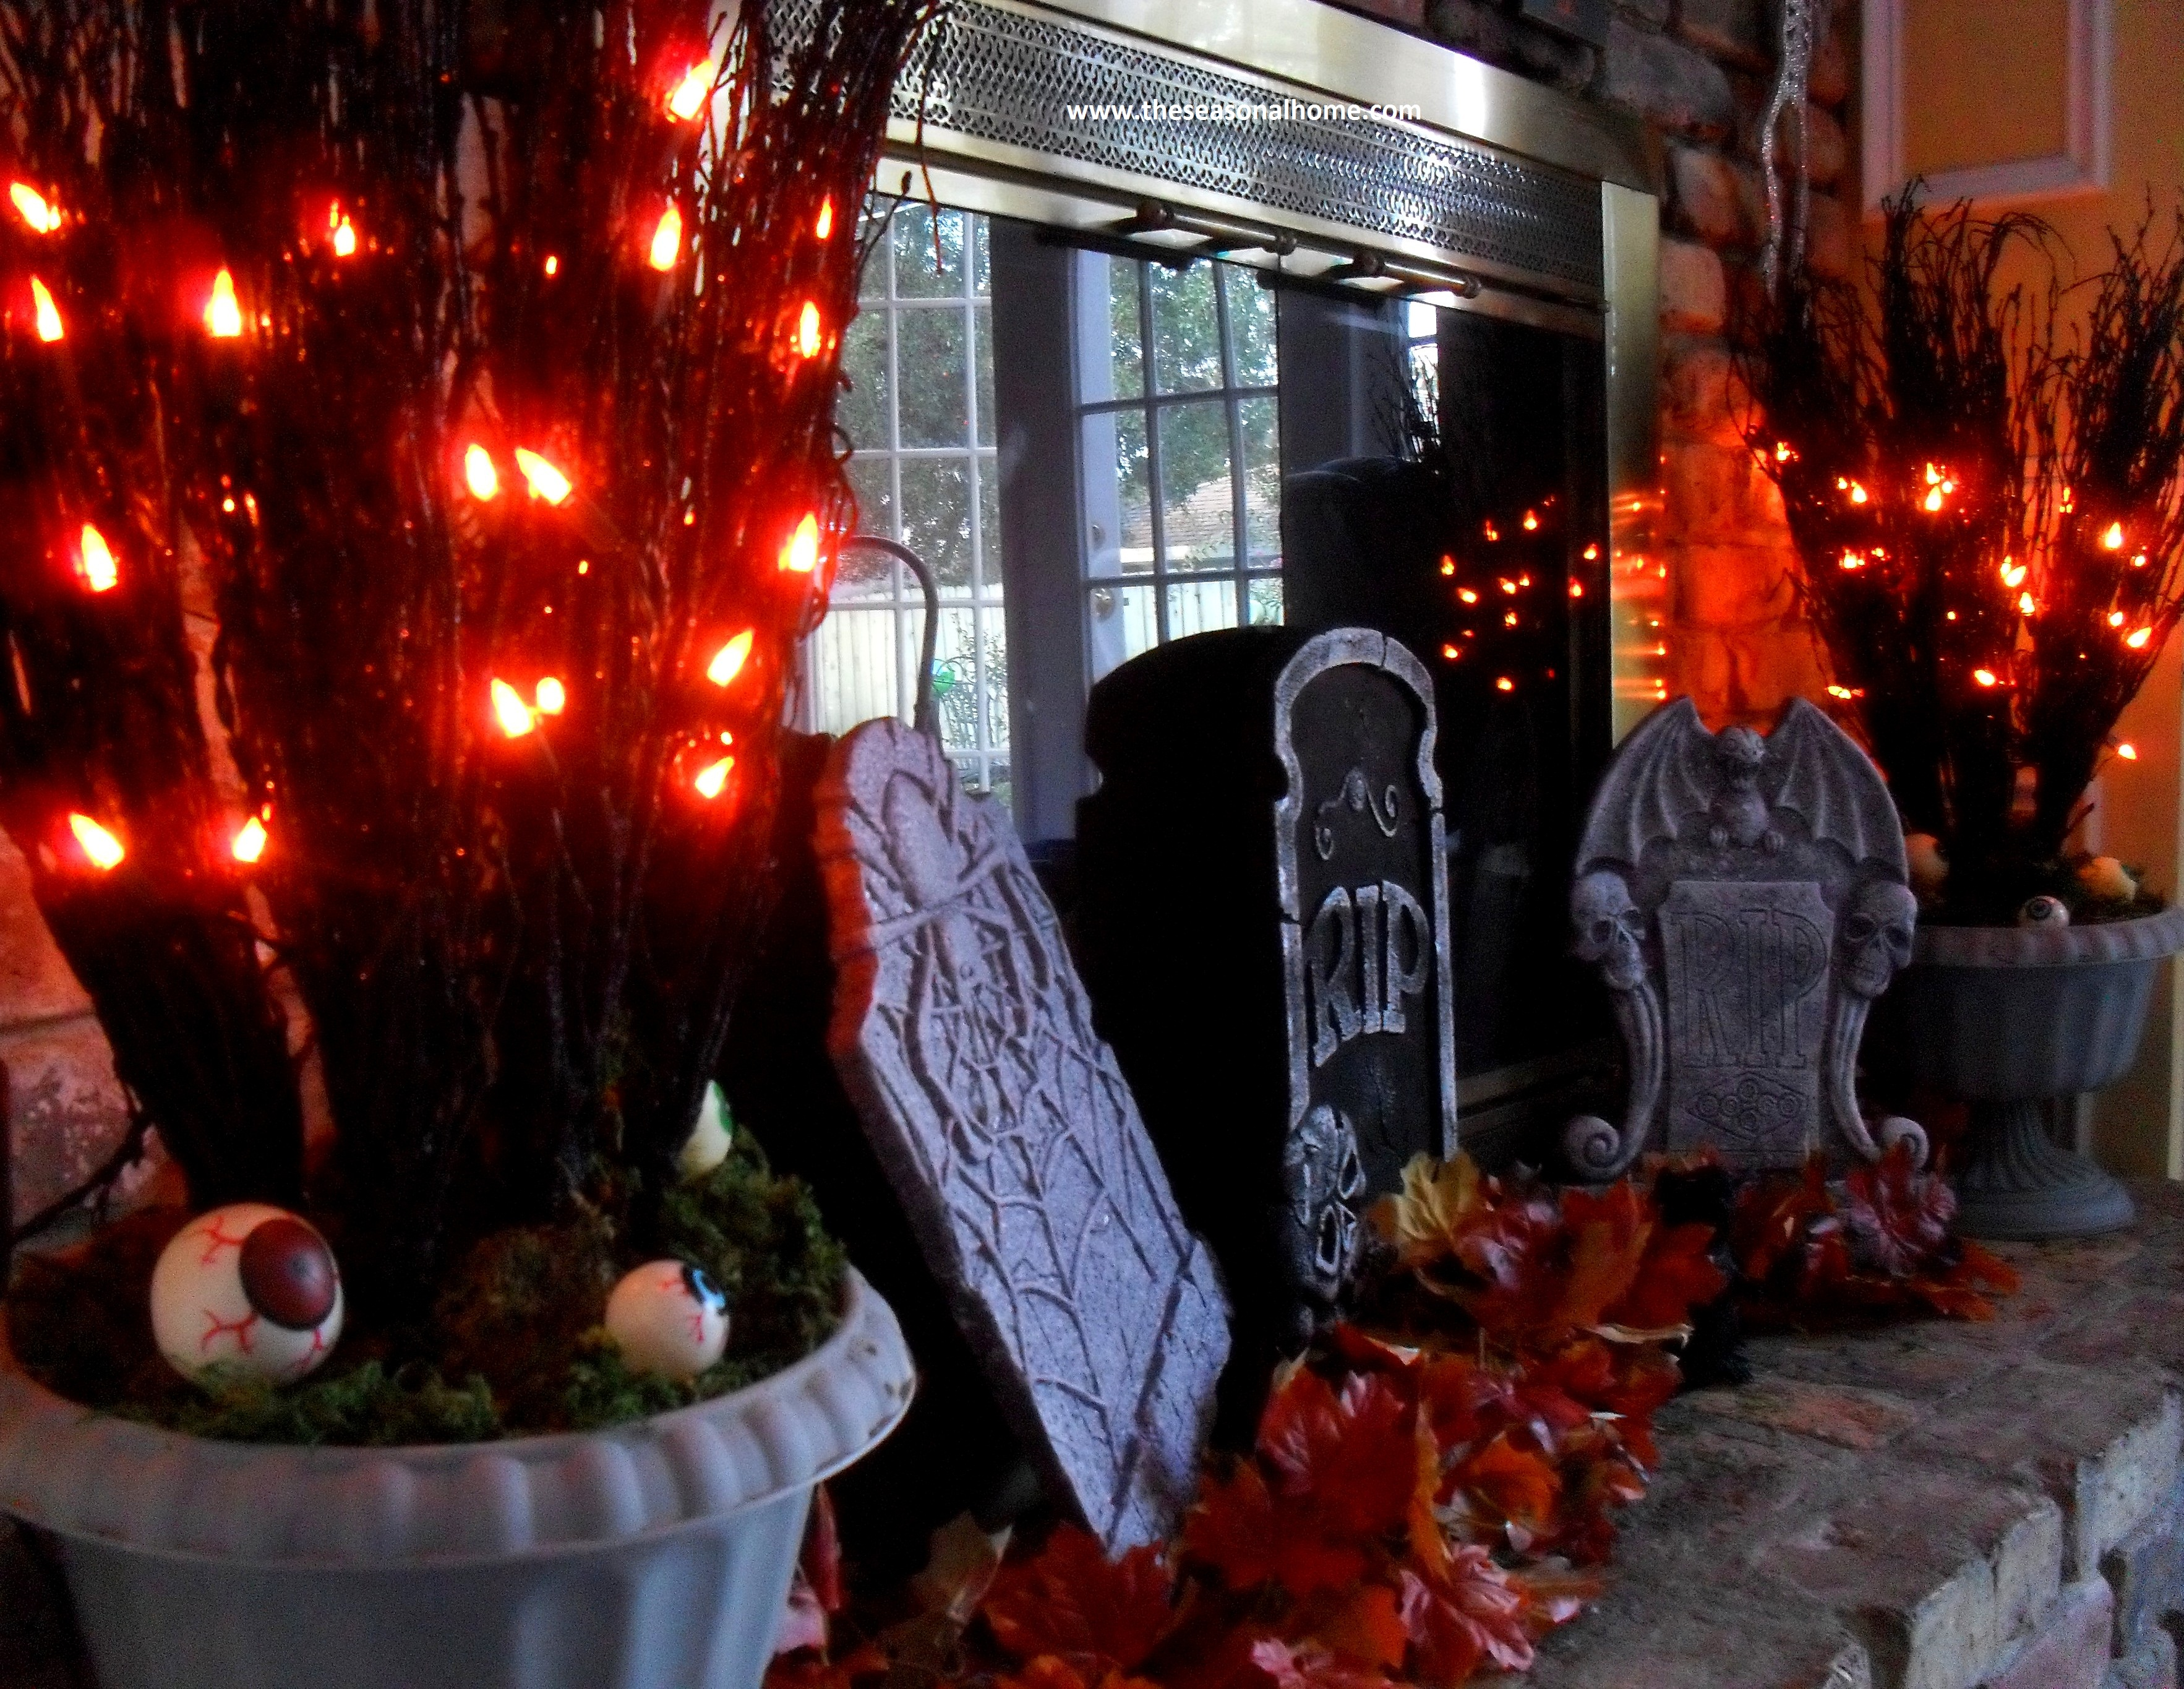 A Thrifty Decorating Theme For Halloween